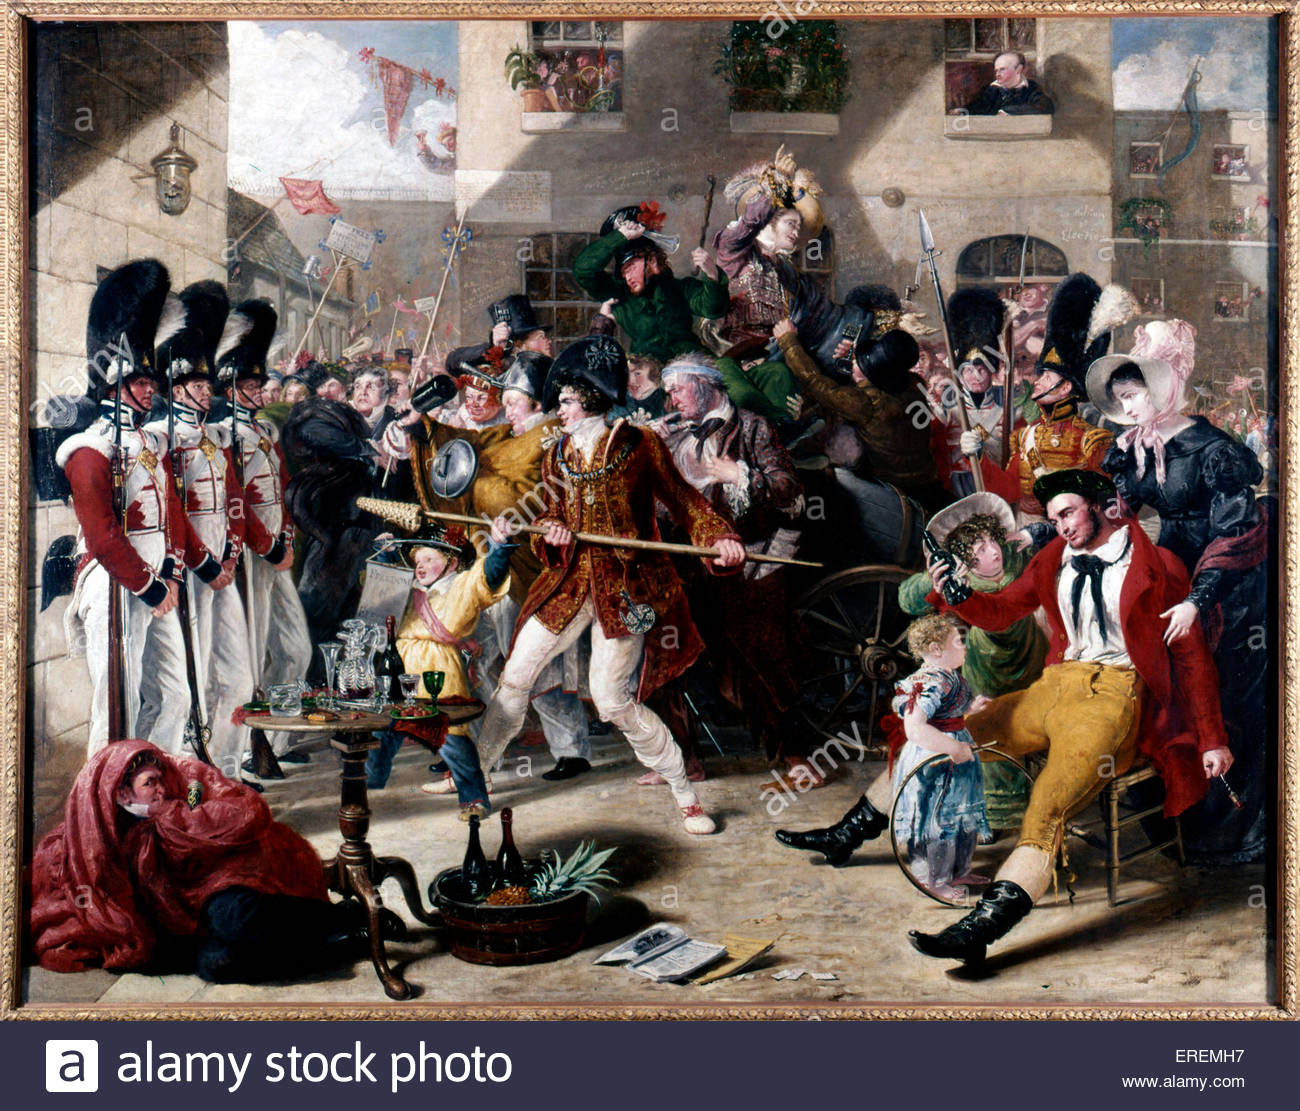 Chairing the Member by Benjamin Robert Haydon, 1828. Oil on canvas,  1524 x 1918 mm. English painter, teacher and - Stock Image